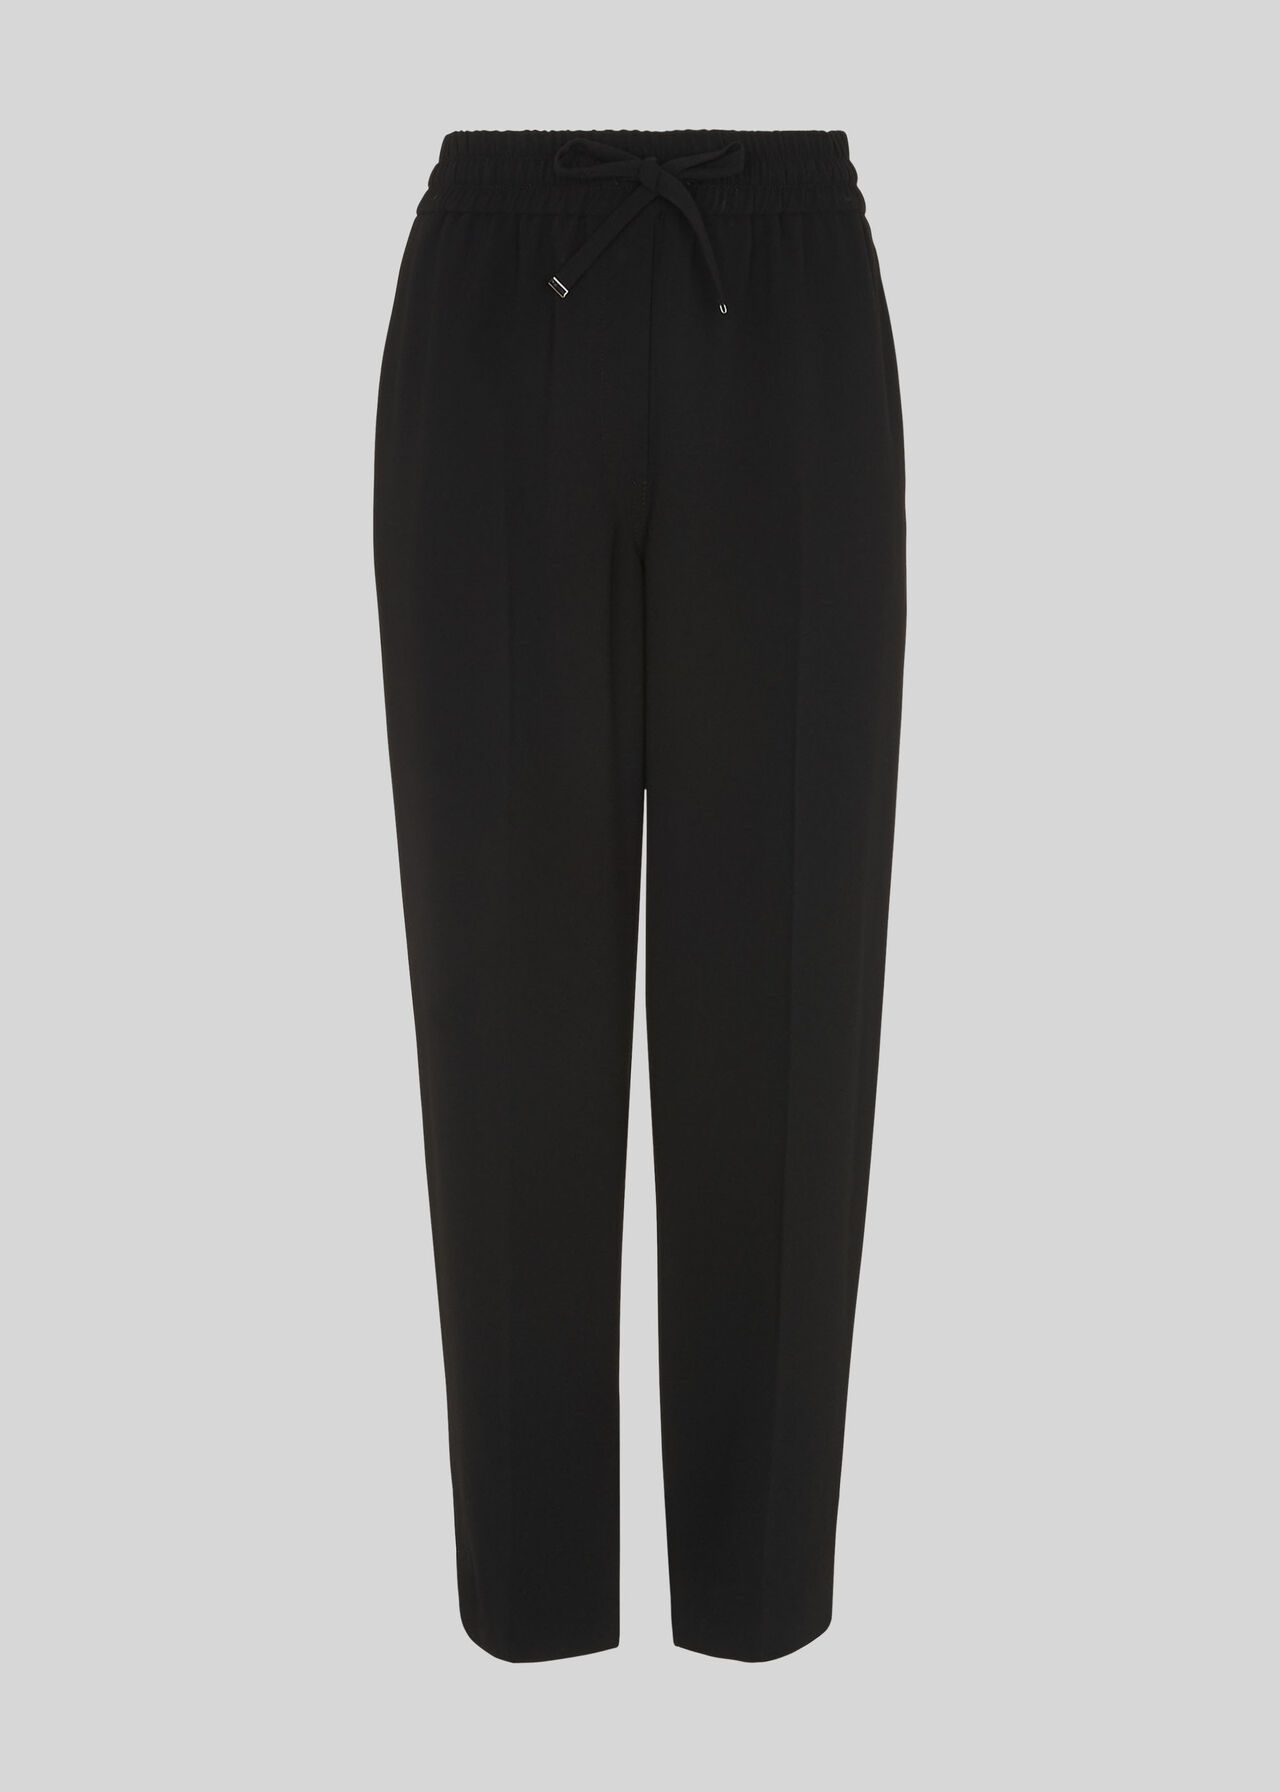 Crepe Tapered Jogger Black